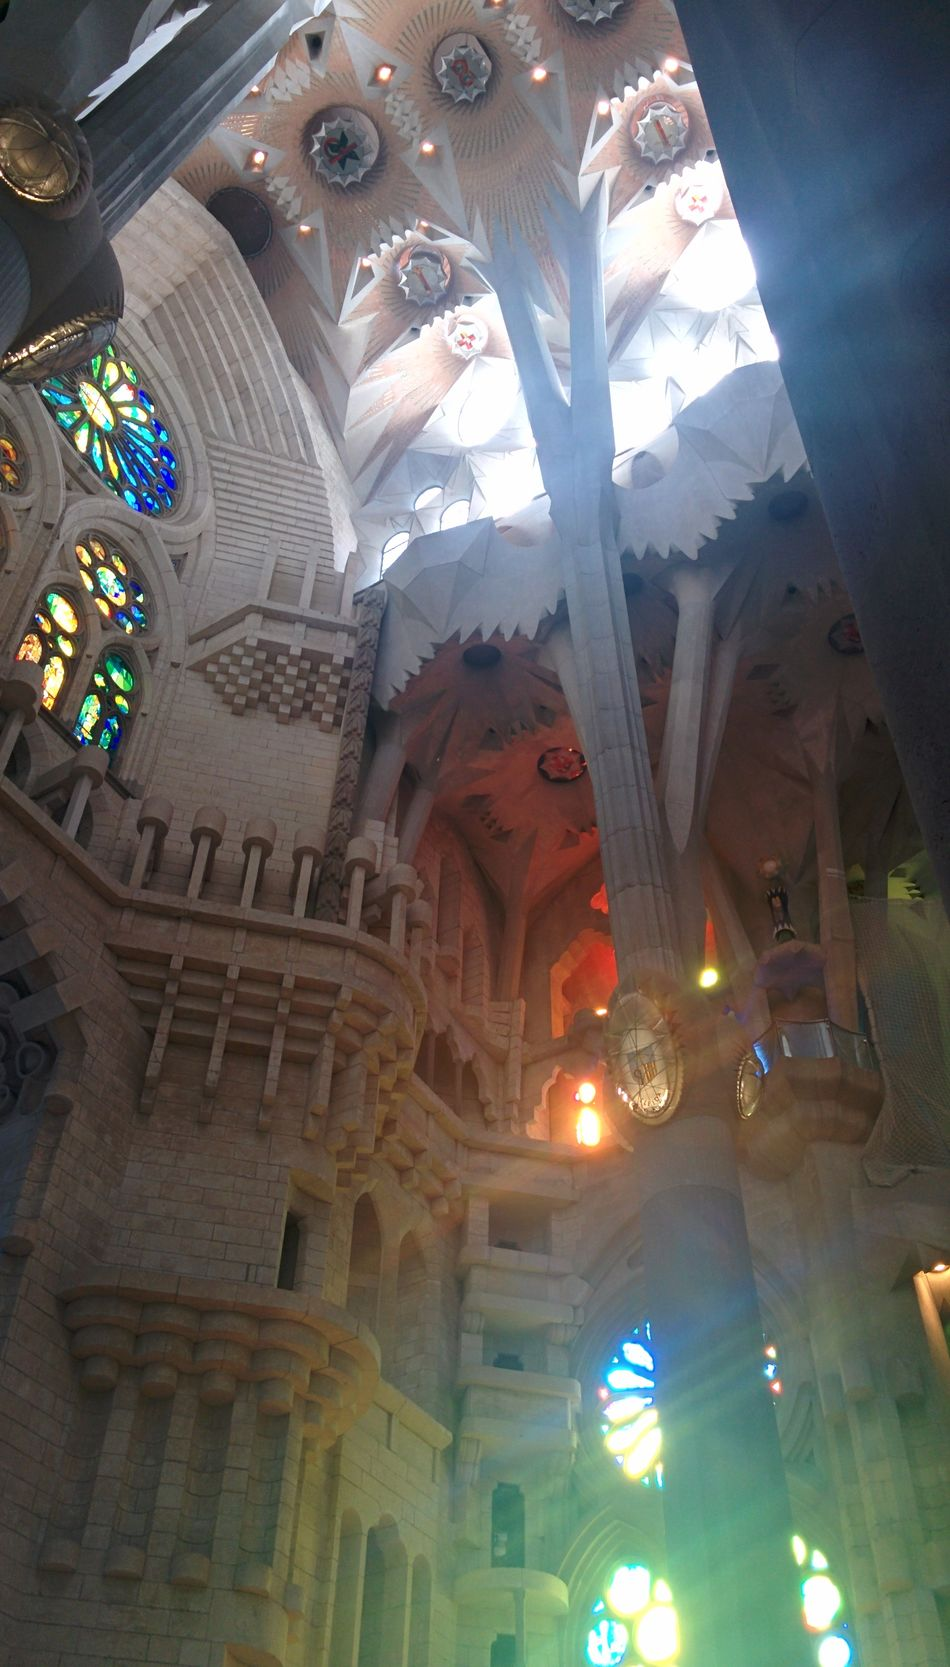 Architecture Barcelona Beauty Flowers Gaudi Lights Other Dimensional Being Sacrada Familia SPAIN Stone Flowers